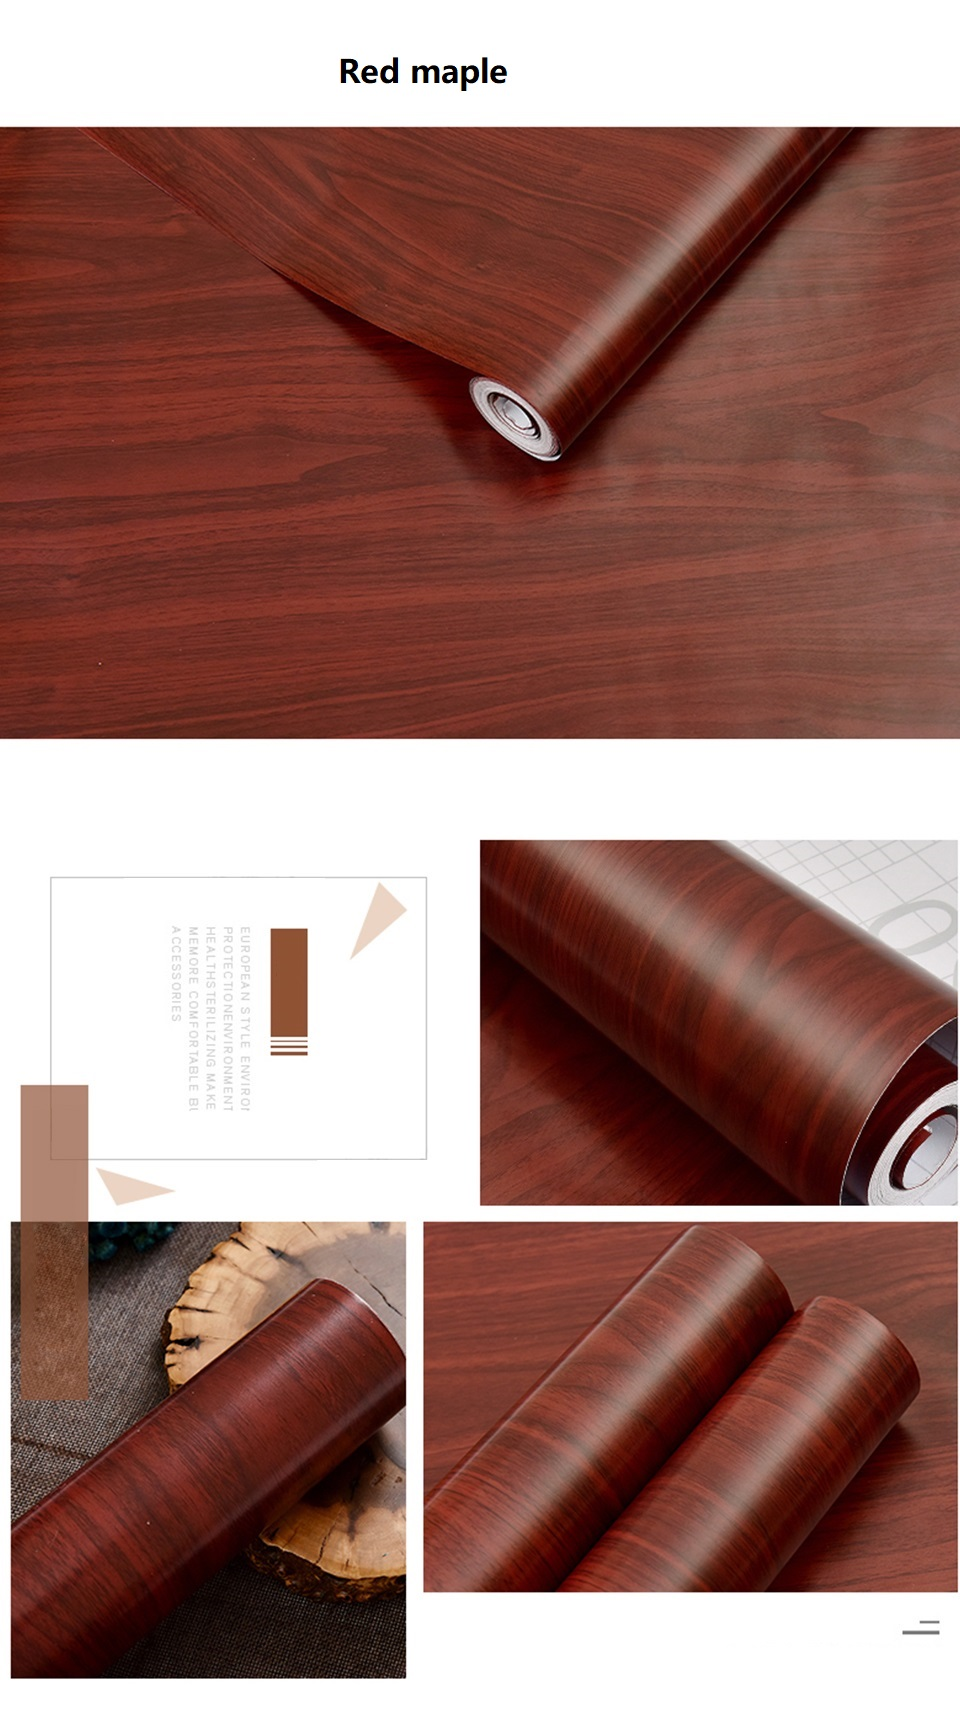 PVC Vinyl Wood Grain Contact Paper for Kitchen Cabinets Table Sticker Waterproof Self adhesive Wallpaper Phone Case Stickers HTB1Gp30b8jTBKNjSZFDq6zVgVXaC